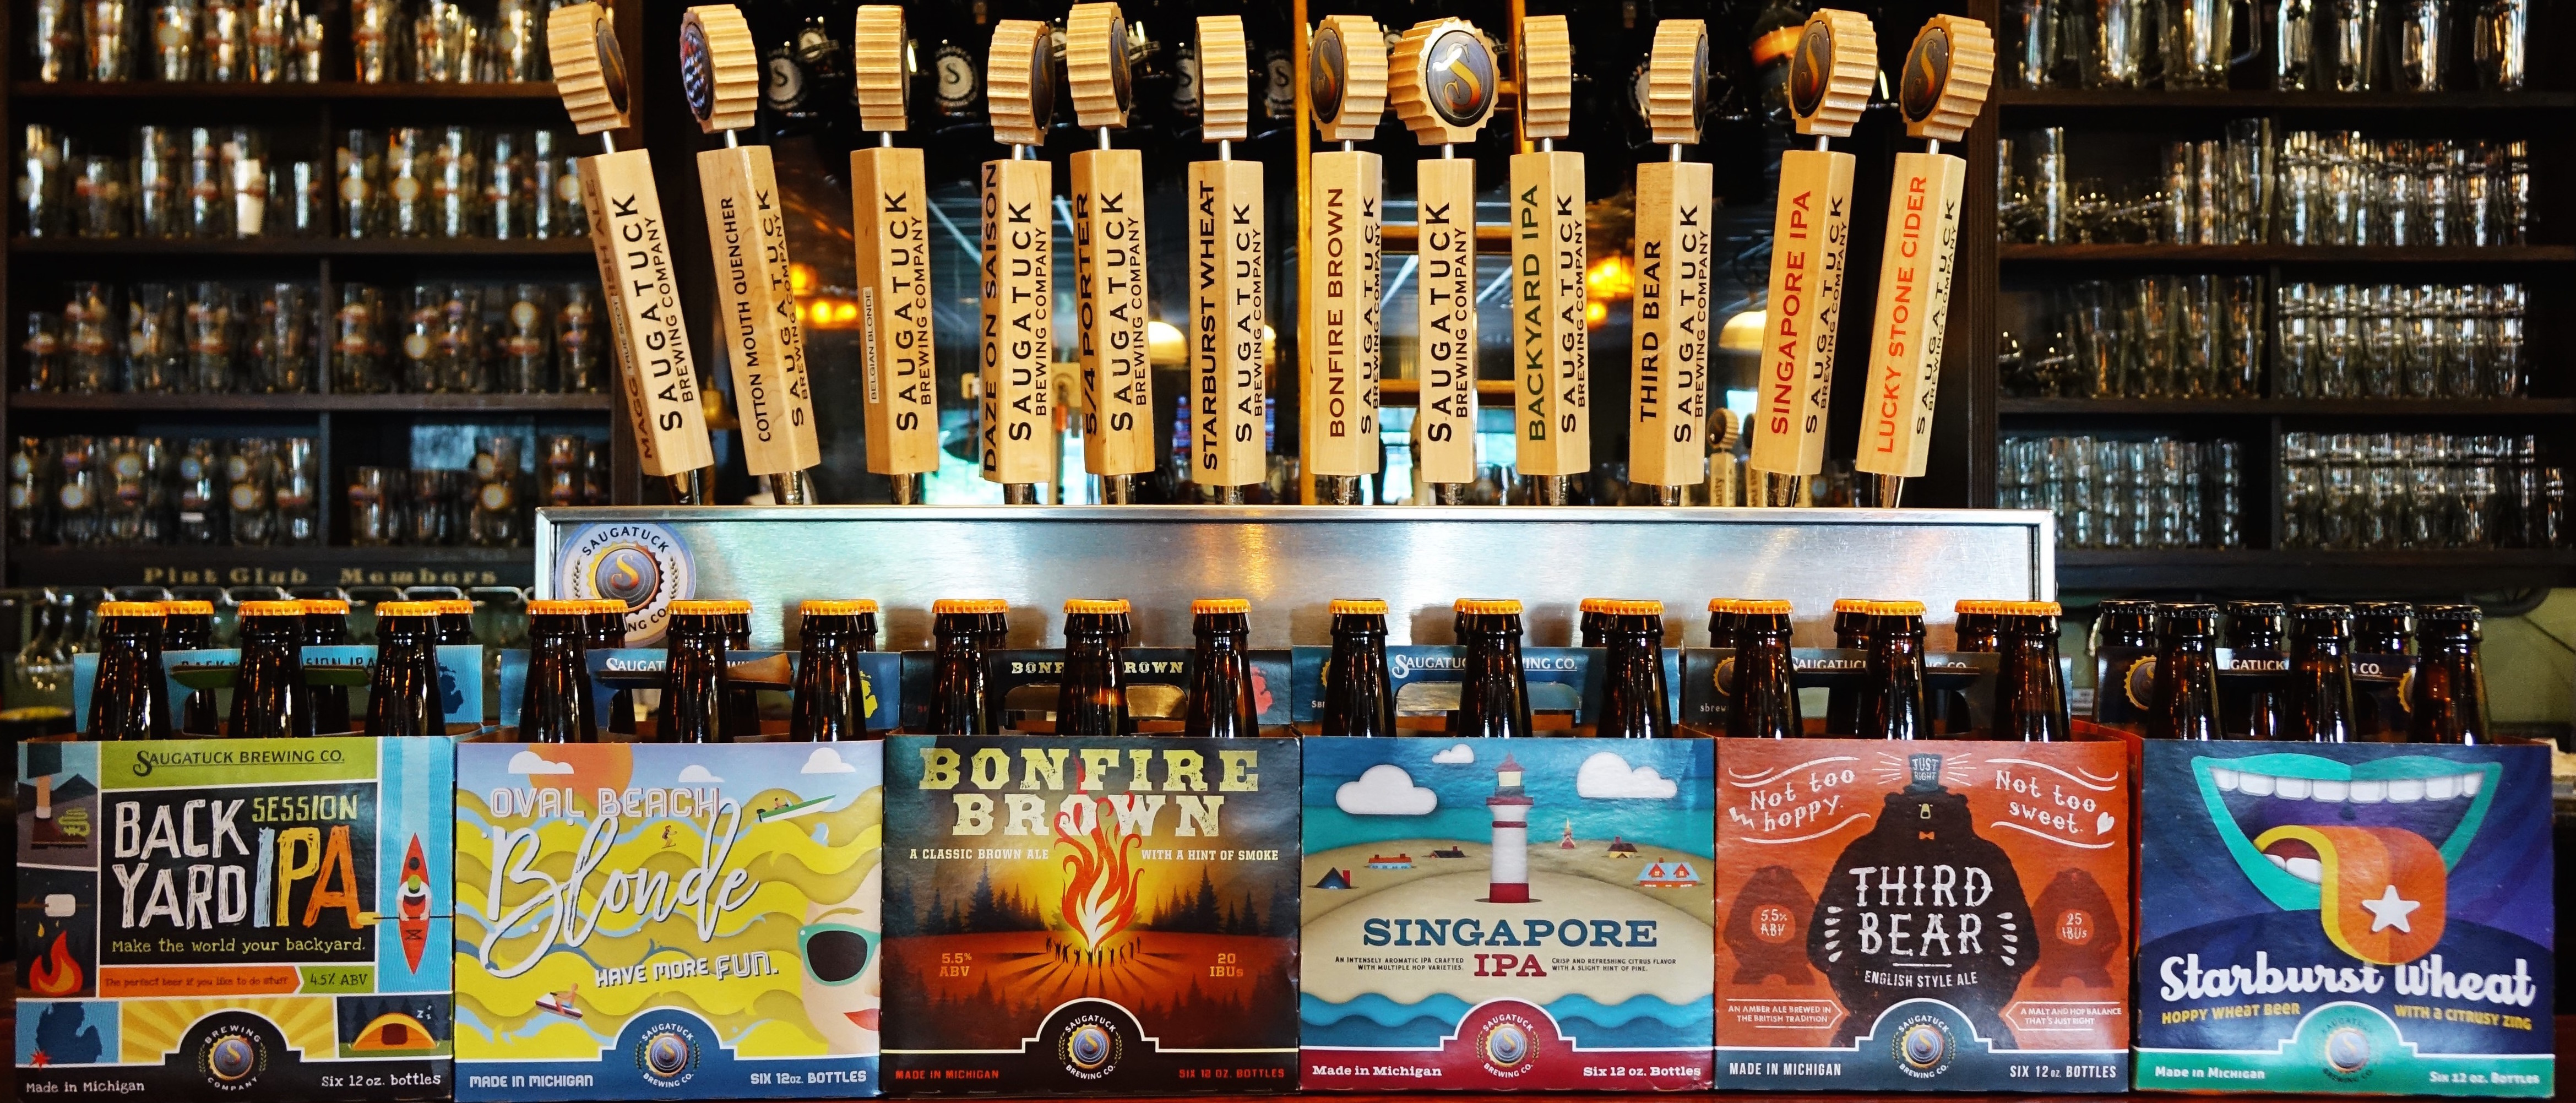 Saugatuck Brewing Company Gives Mainstay Beers A New Look With the Help of Revel